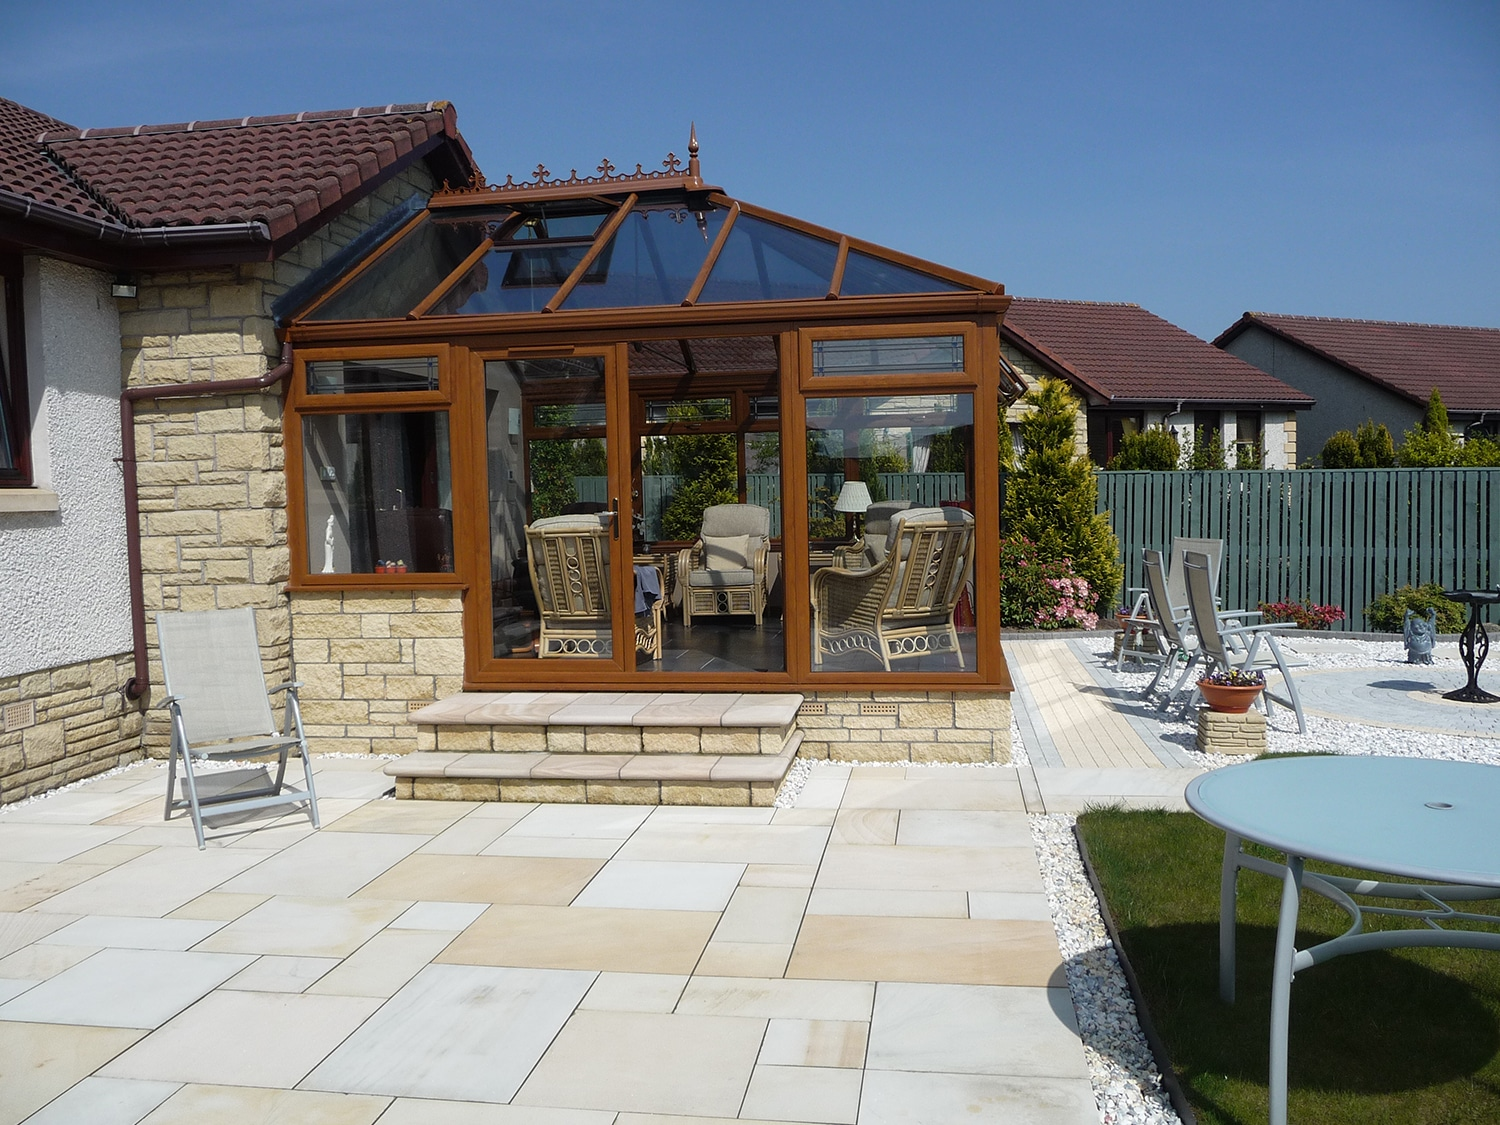 Patio tiles cleaned with Net-Trol and pressure washer